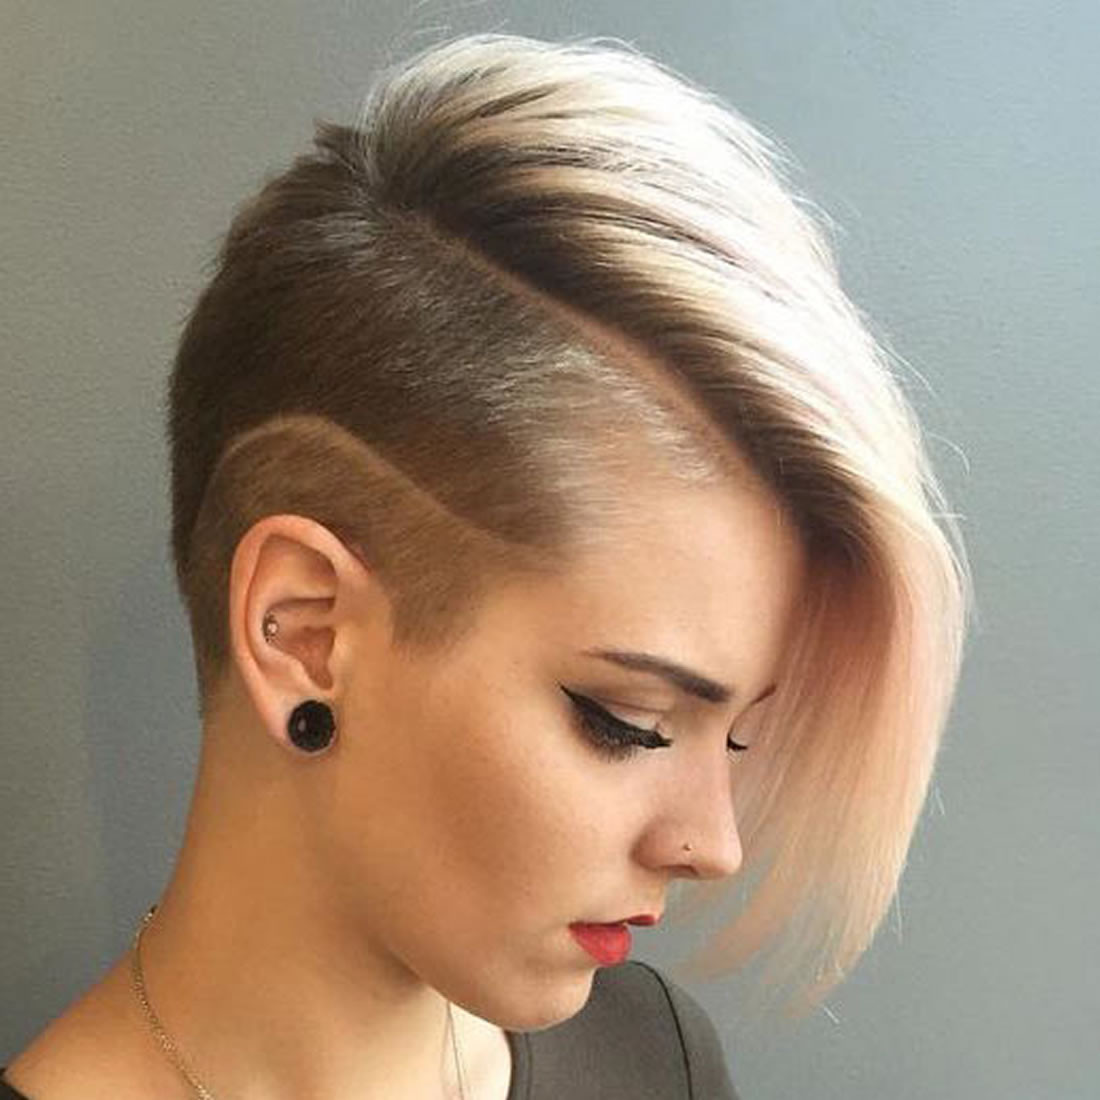 Best ideas about Girl Undercut Hairstyle . Save or Pin 2018 Undercut Short Bob Hairstyles and Haircuts for Women Now.